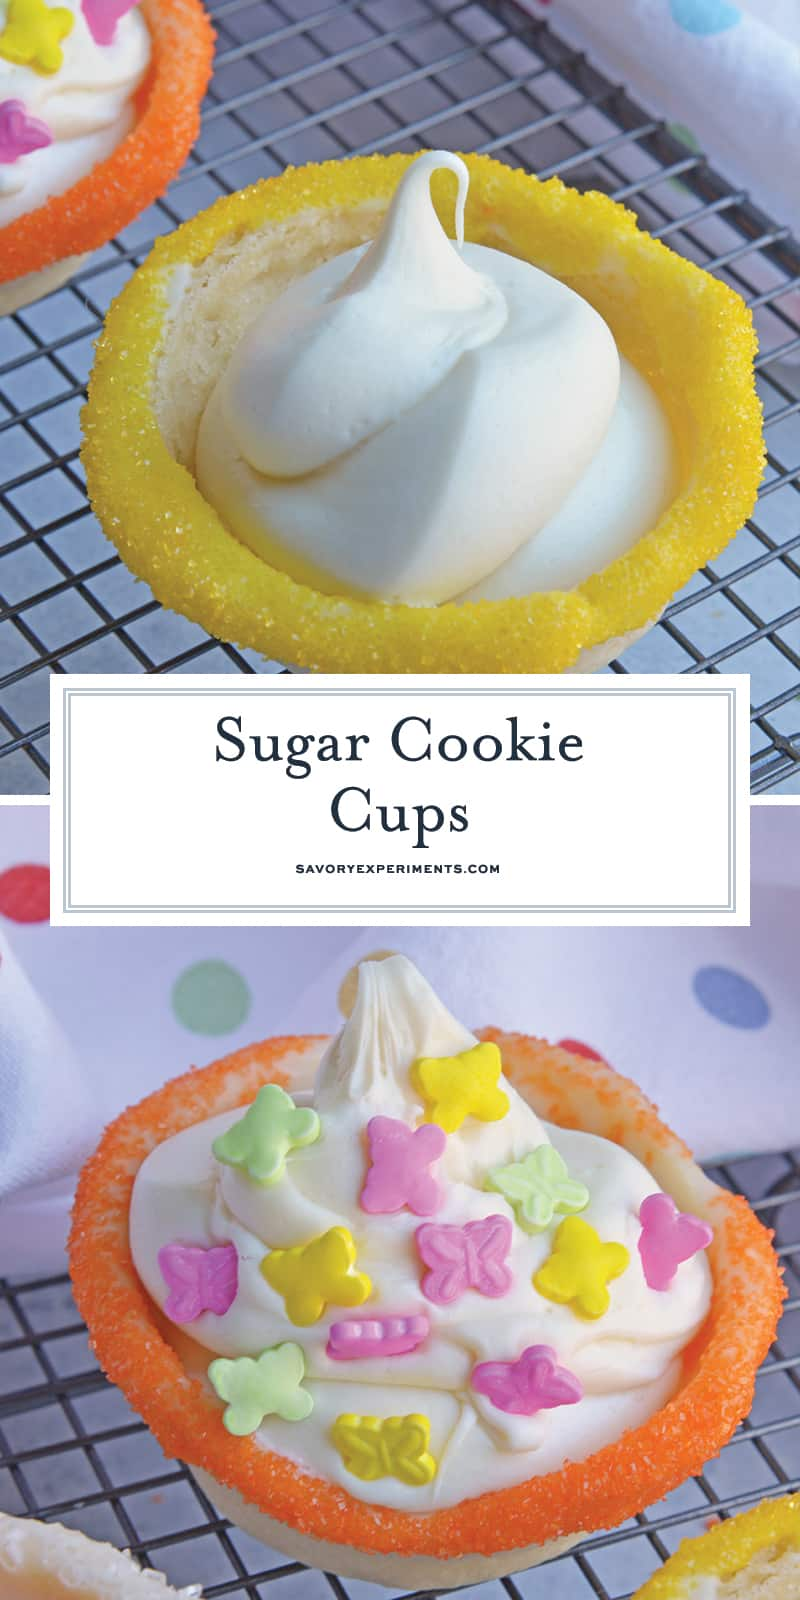 This Sugar Cookie Cups recipe puts a spin on your typical ice cream cone. Why choose between cookies or ice cream when you can have both! #sugarcookiecups #howtomakesugarcookiecups www.savoryexperiments.com